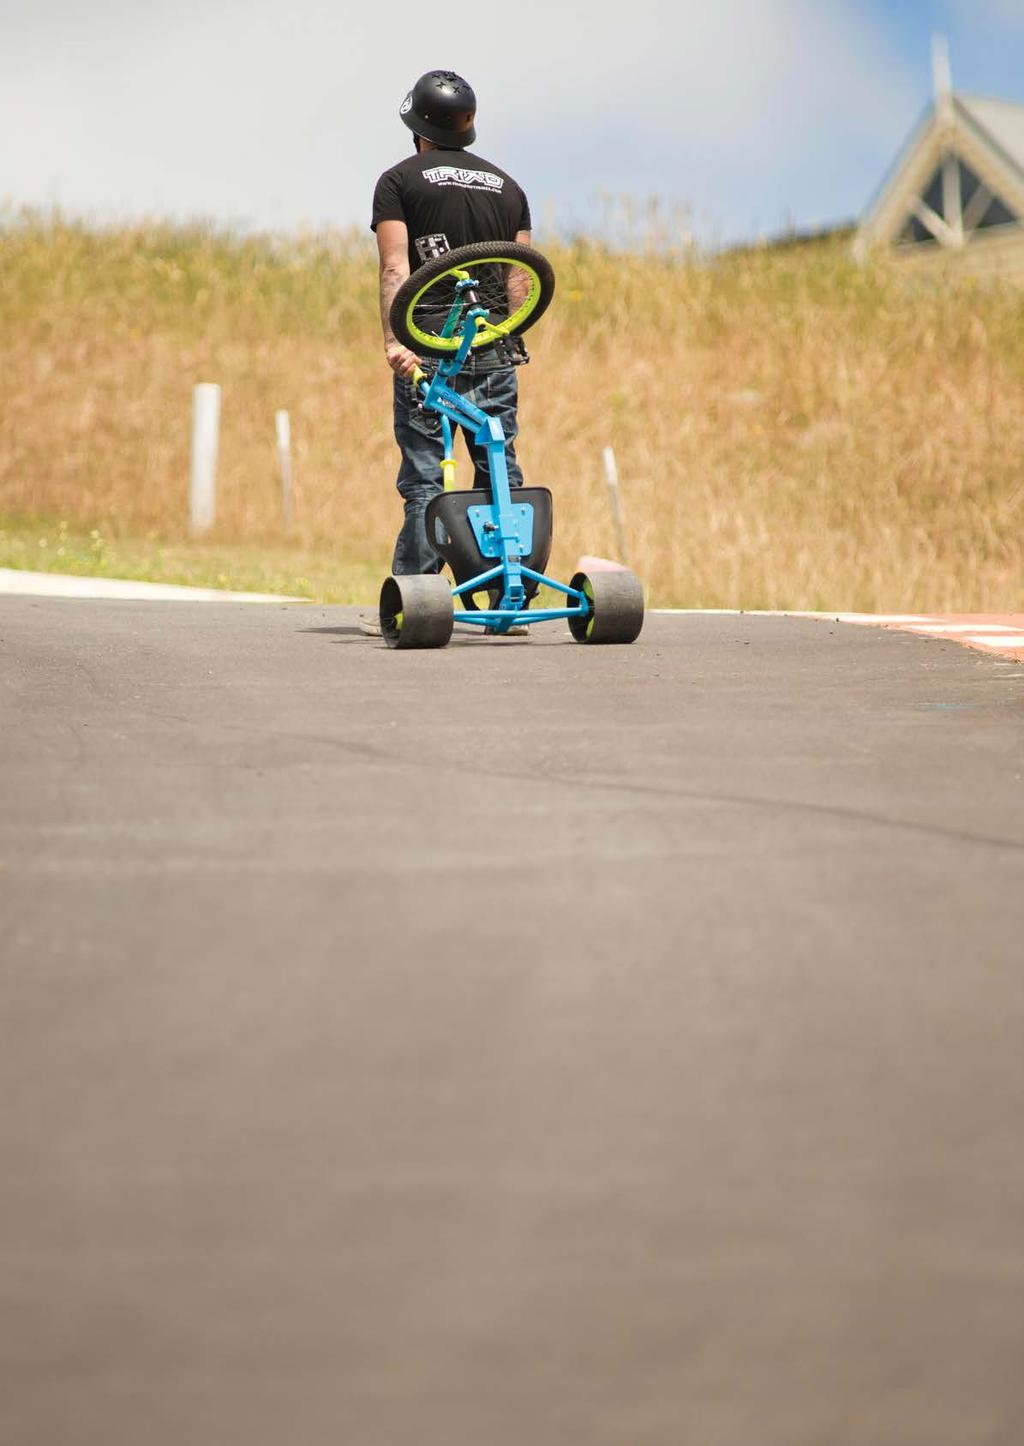 TRIAD PERFORMANCE DRIFT TRIKES GET SIDEWAYS! www.triaddrifttrikes.